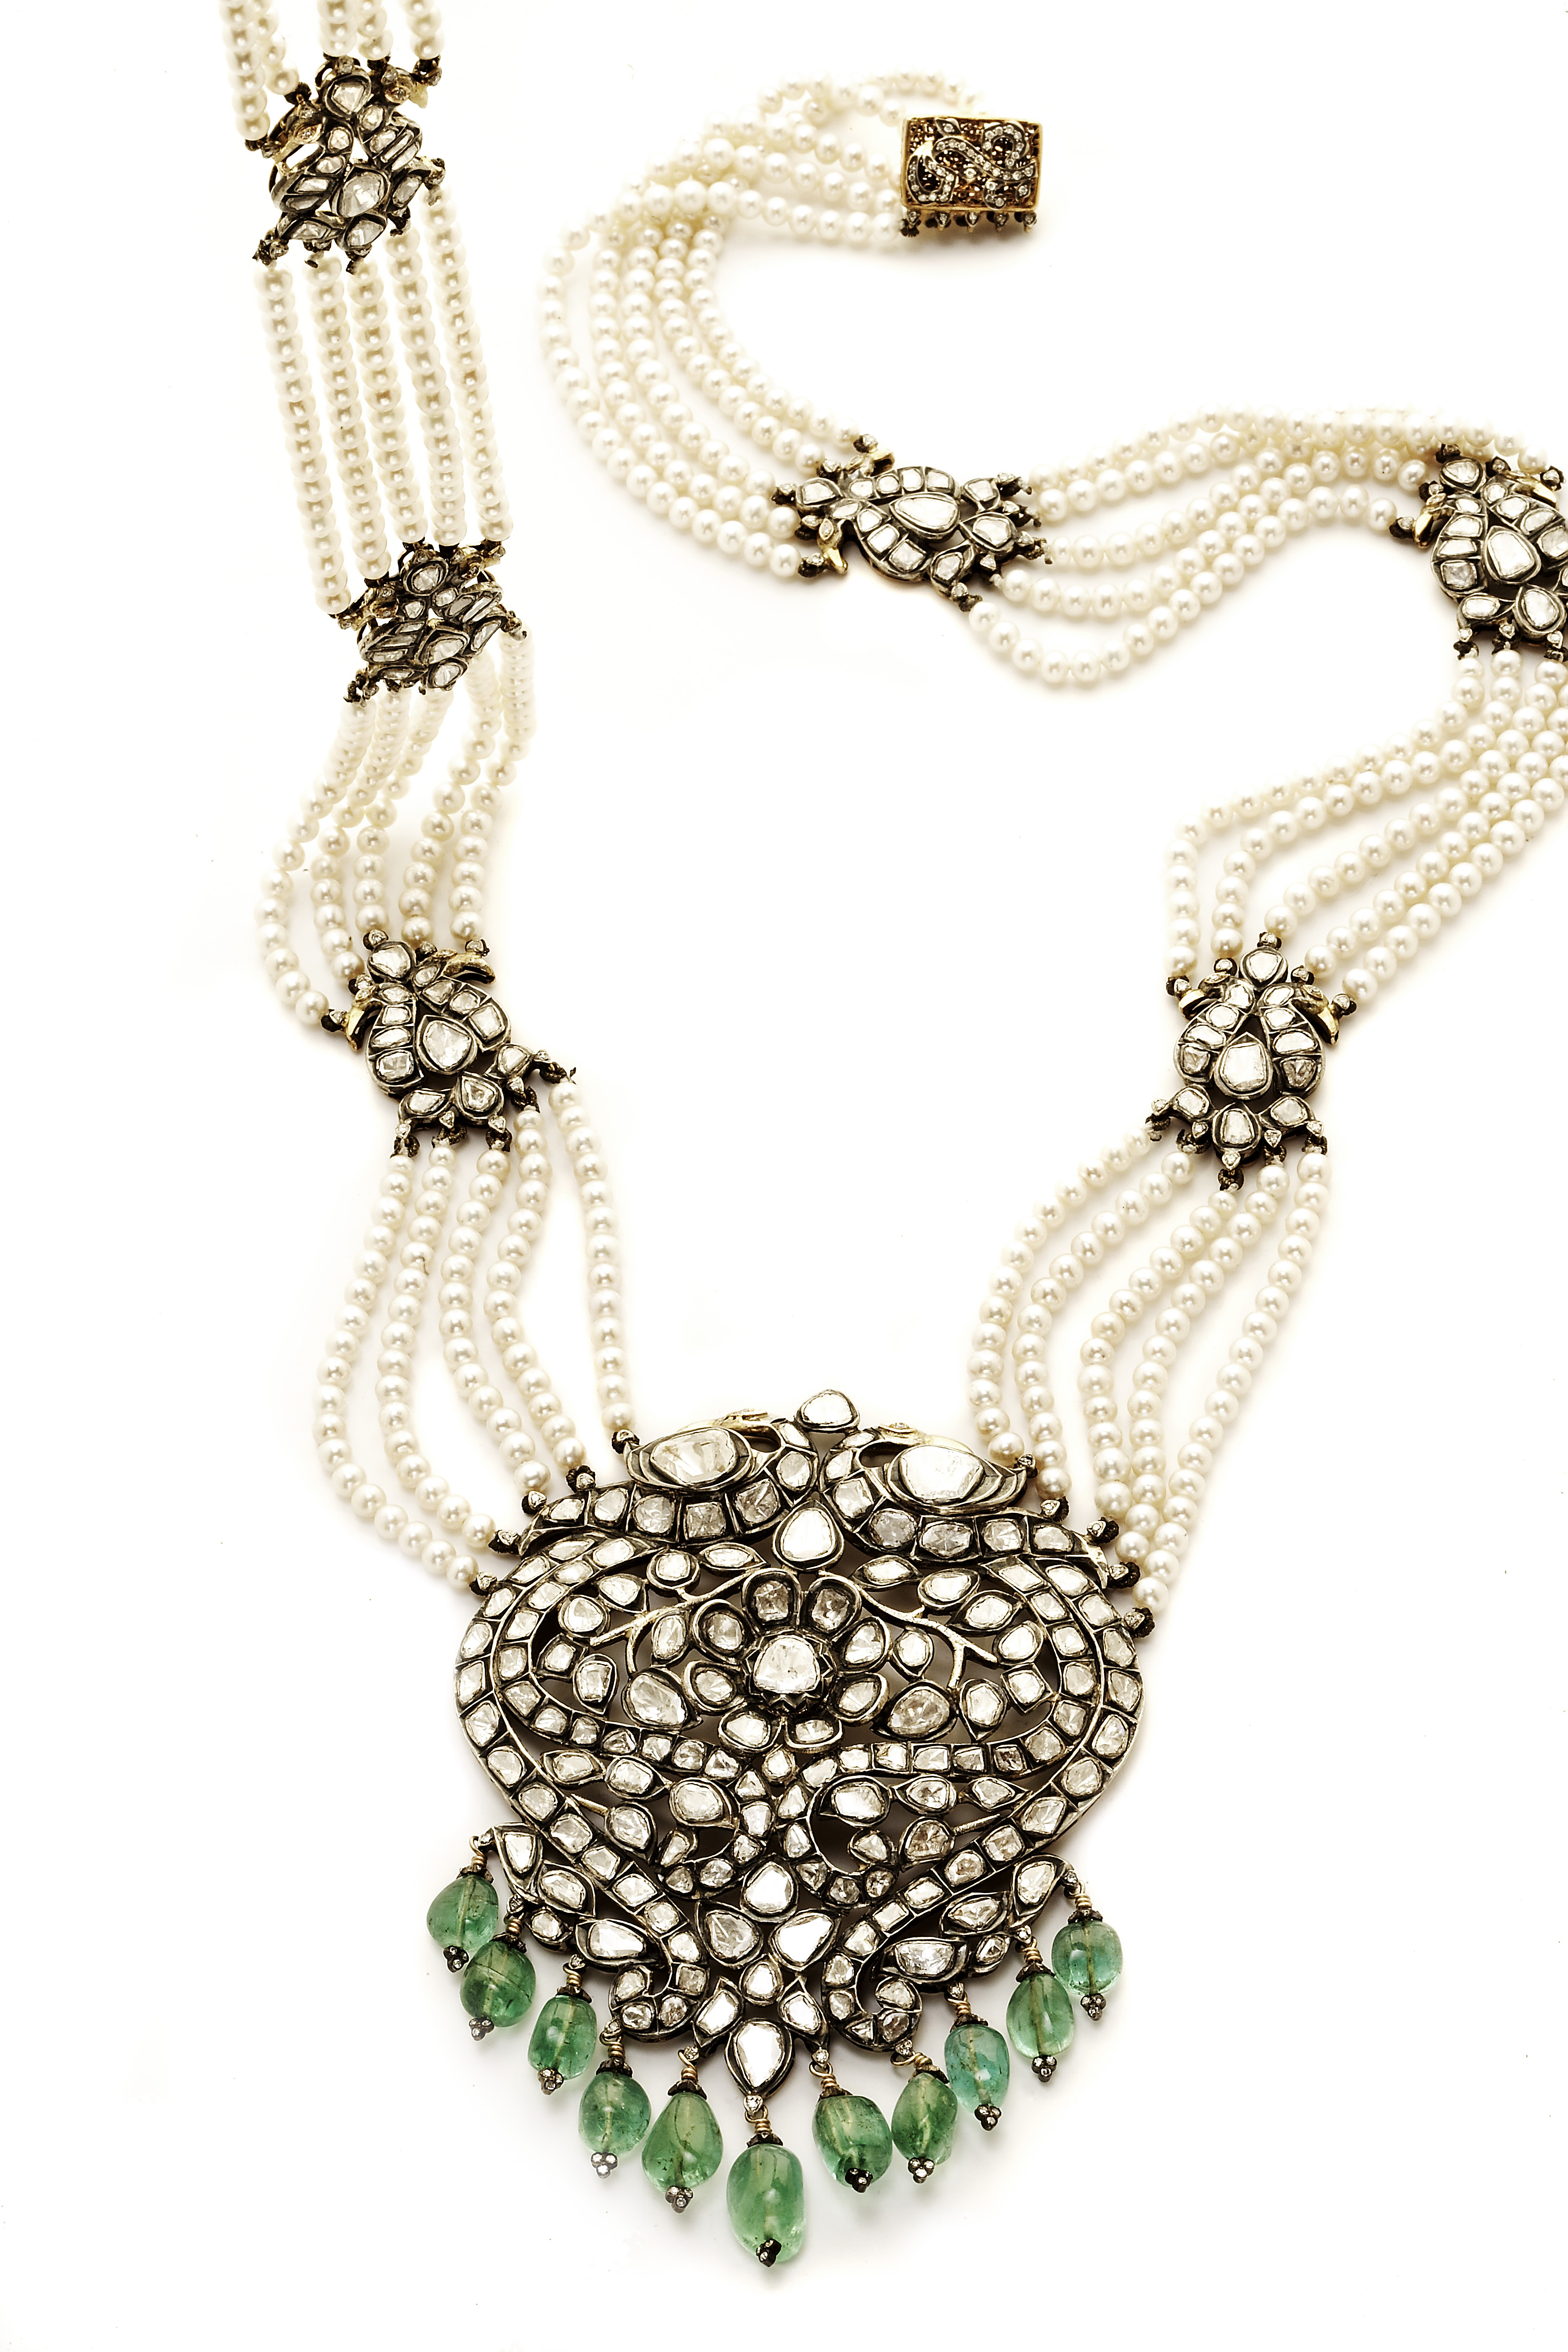 Amrapali She Is A Living Legend Aurumevecom 1 Set Perhiasan India The Method Believed To Have Originated In Royal Courts Of Rajasthan And Gujarat It Oldest Form Jewelry Made Worn